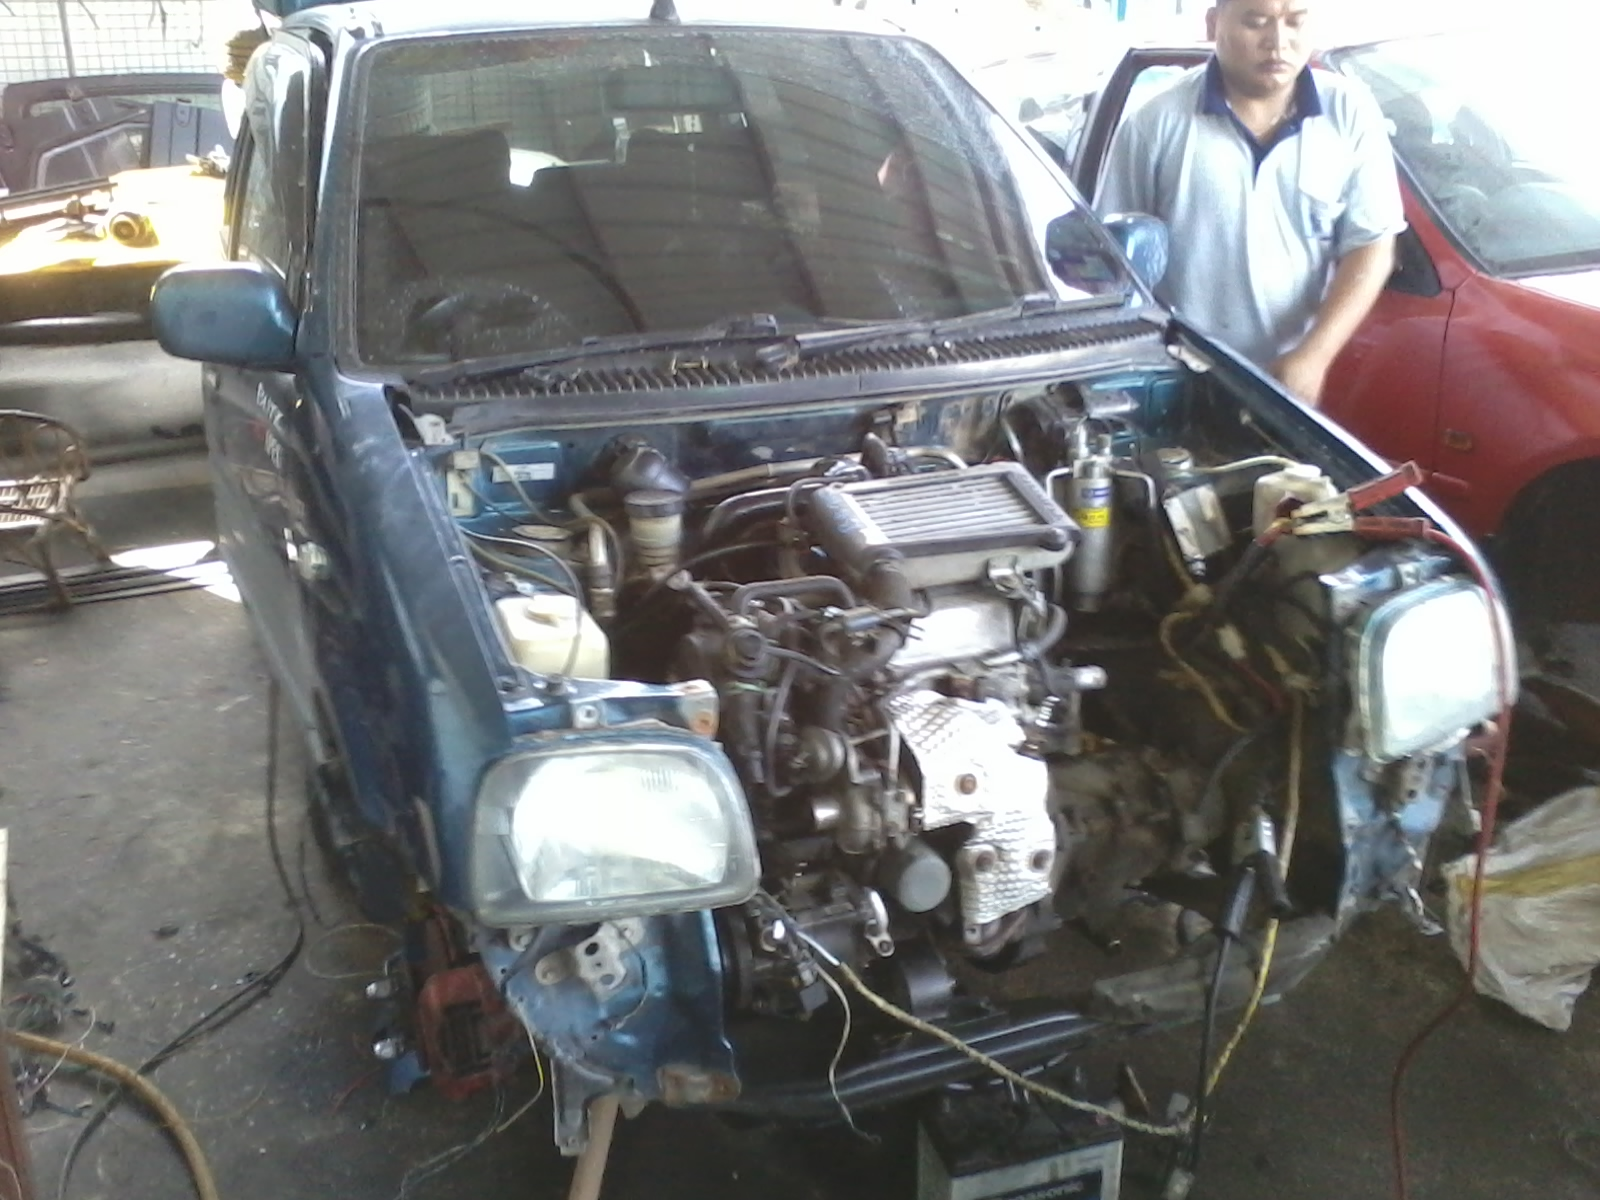 Life With Machine Perodua Kancil 850cc Converted To 660cc Wiring Diagram Daihatsu Jb Ef Det Engine Replaced Carb Position The Air Conditioner Set Still Using Stock Perouda Except Compressor L9